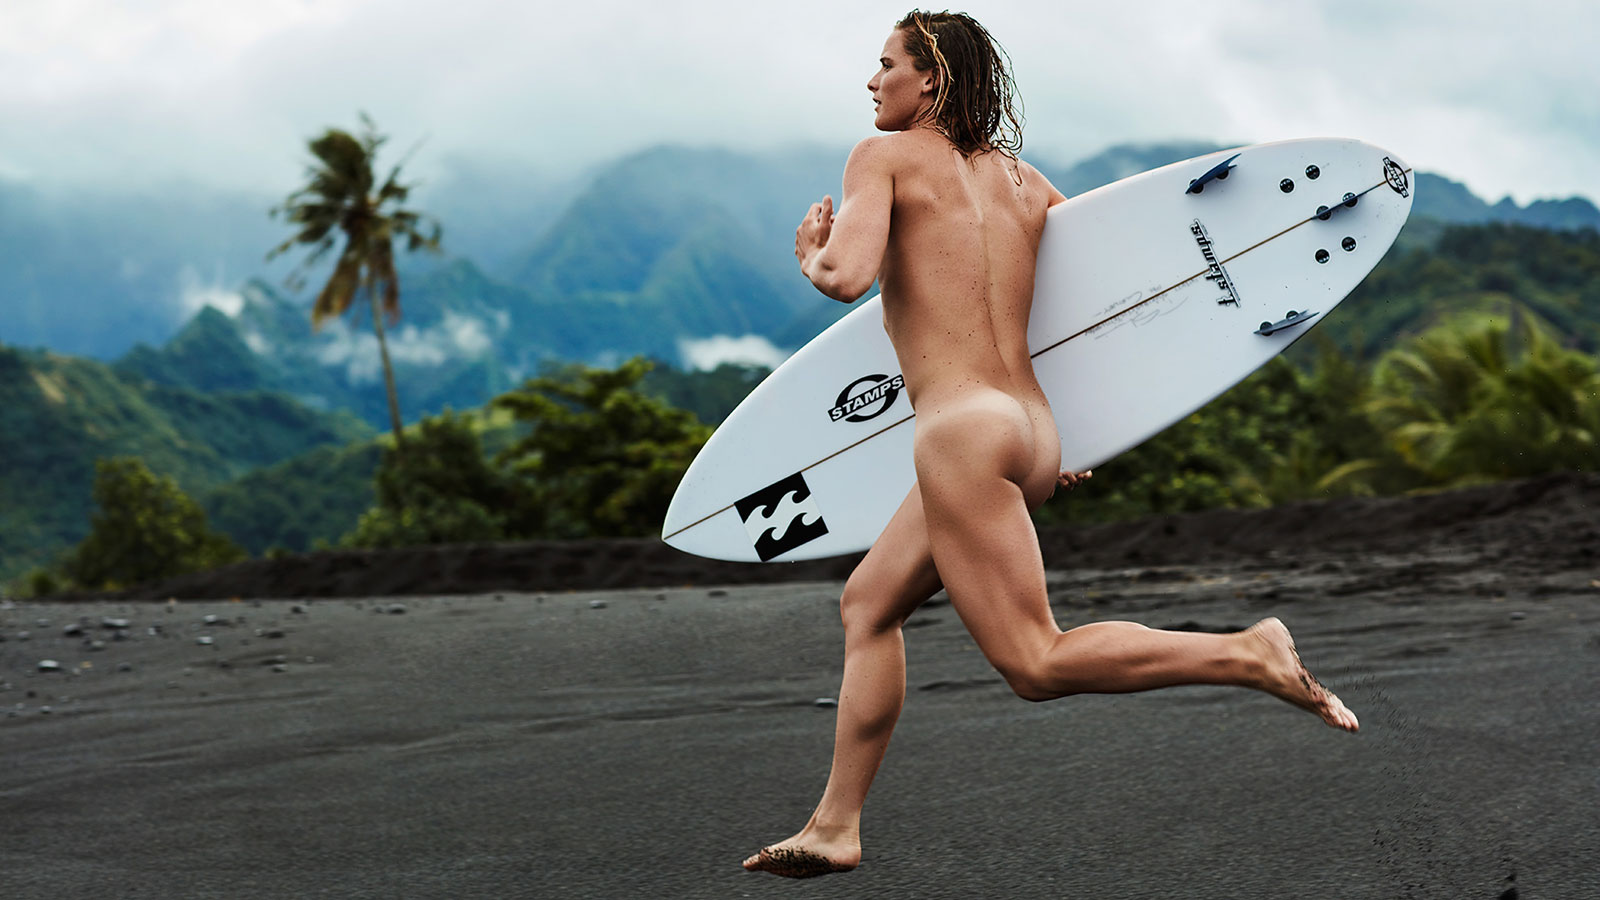 Courtney Conlogue, Surfing, featured in the Body Issue 2016: Fully Exposed on ESPN the Magazine